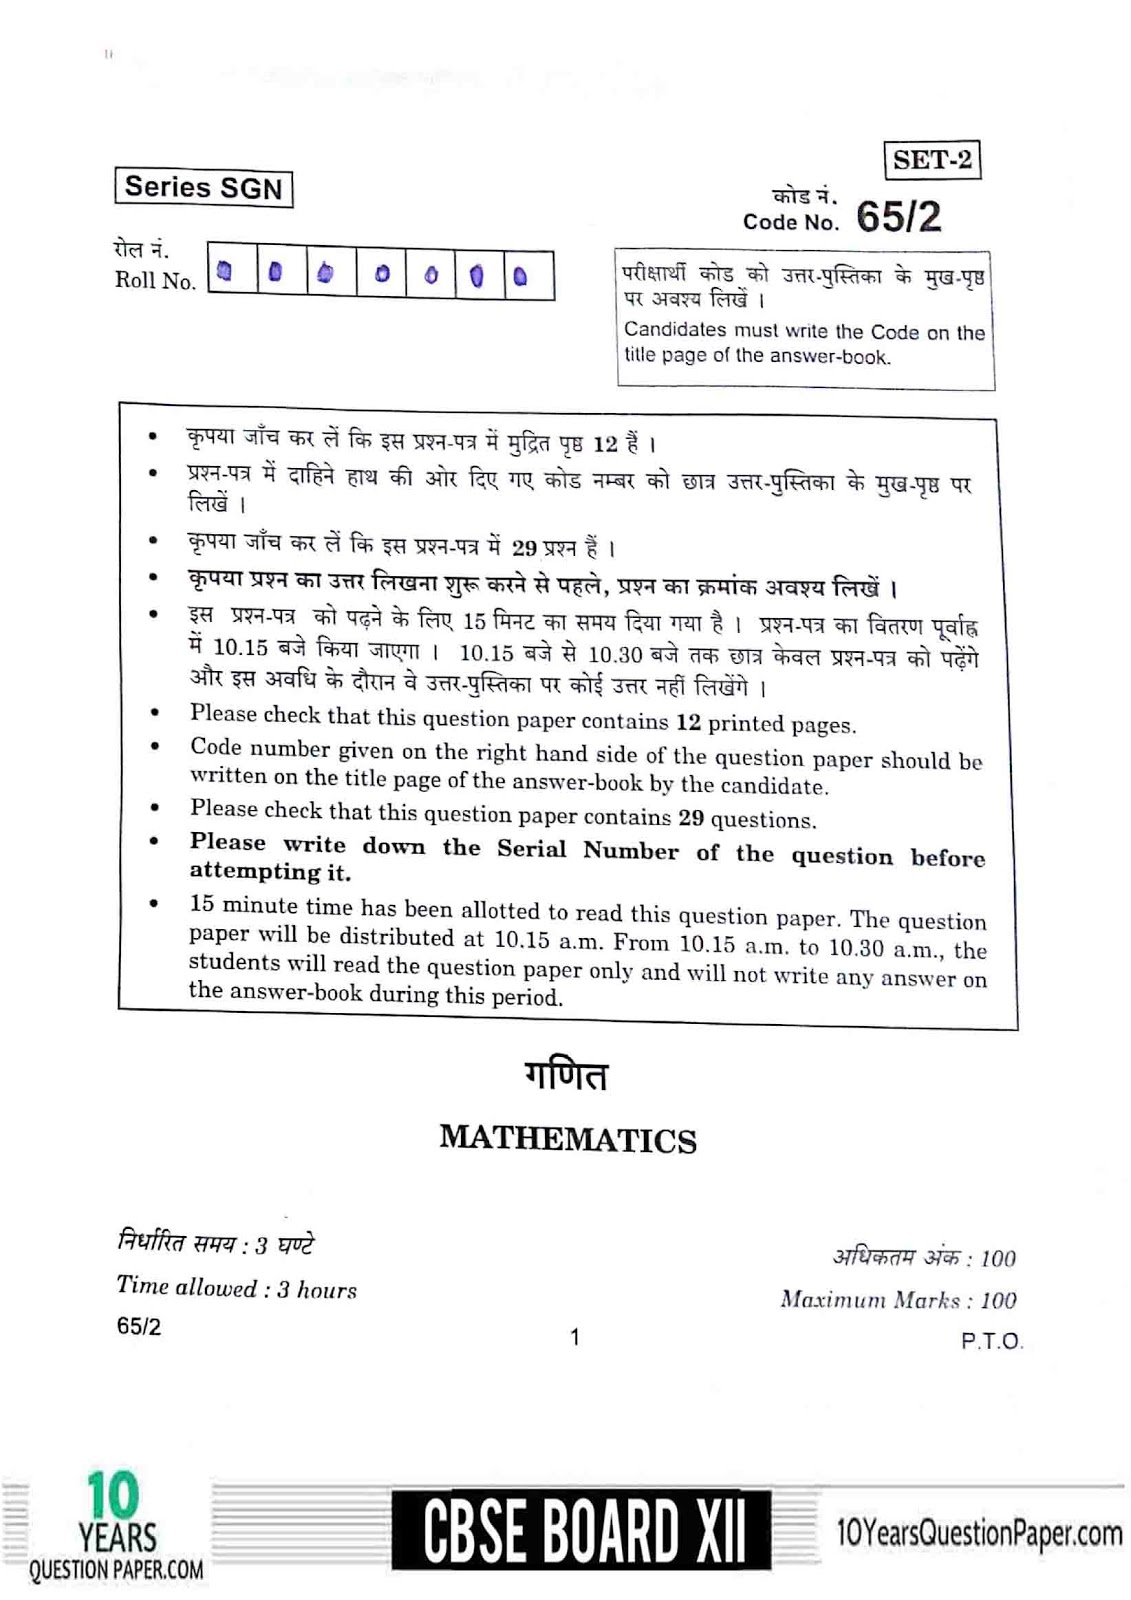 CBSE class 12 Maths 2018 question paper page-01